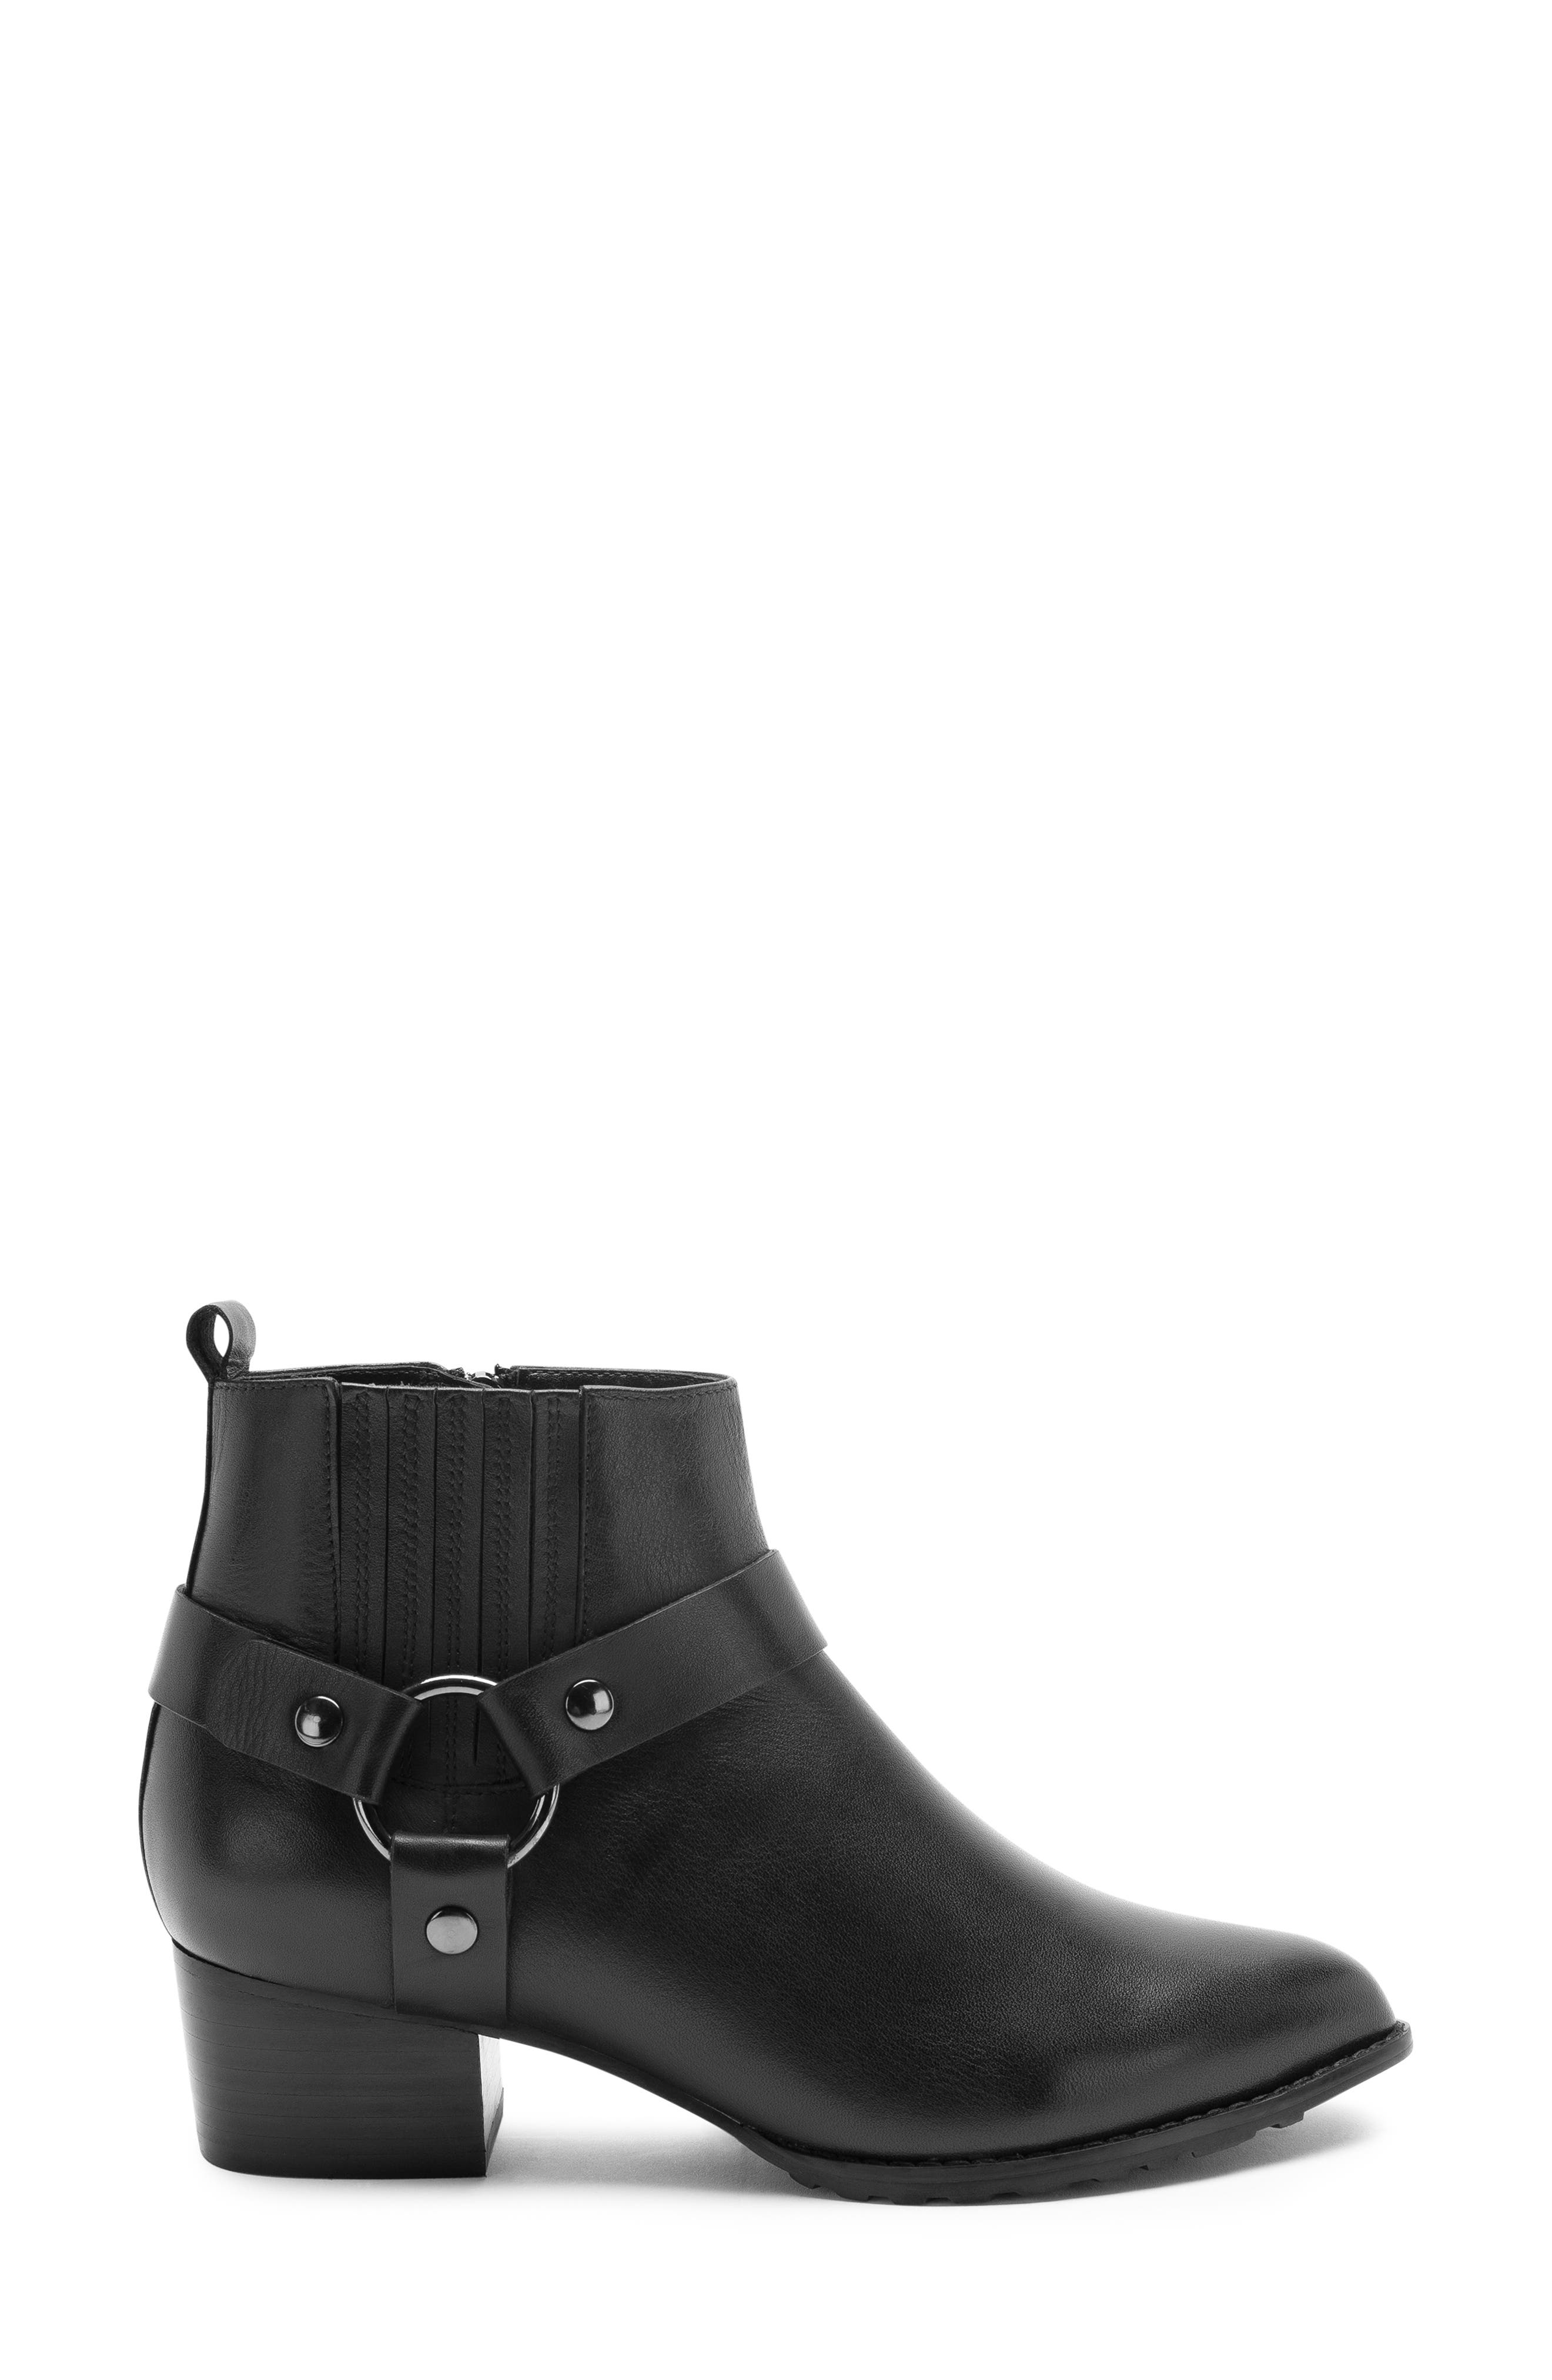 Tasha Waterproof Bootie,                             Alternate thumbnail 3, color,                             BLACK LEATHER